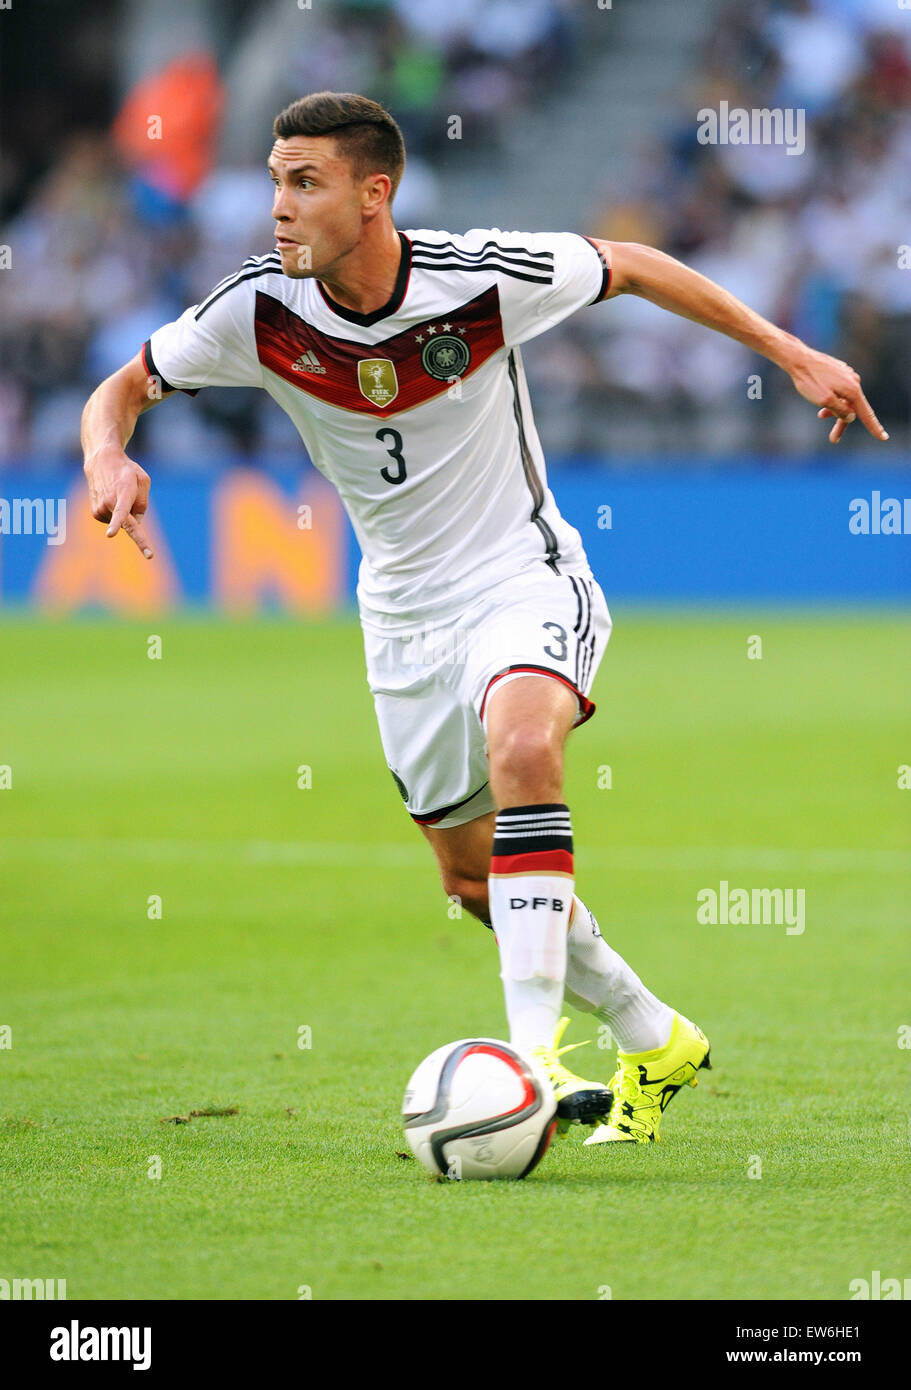 Friendlymatch at Rhein Energie Stadion Cologne: Germany vs USA: Jonas Hector (GER) - Stock Image